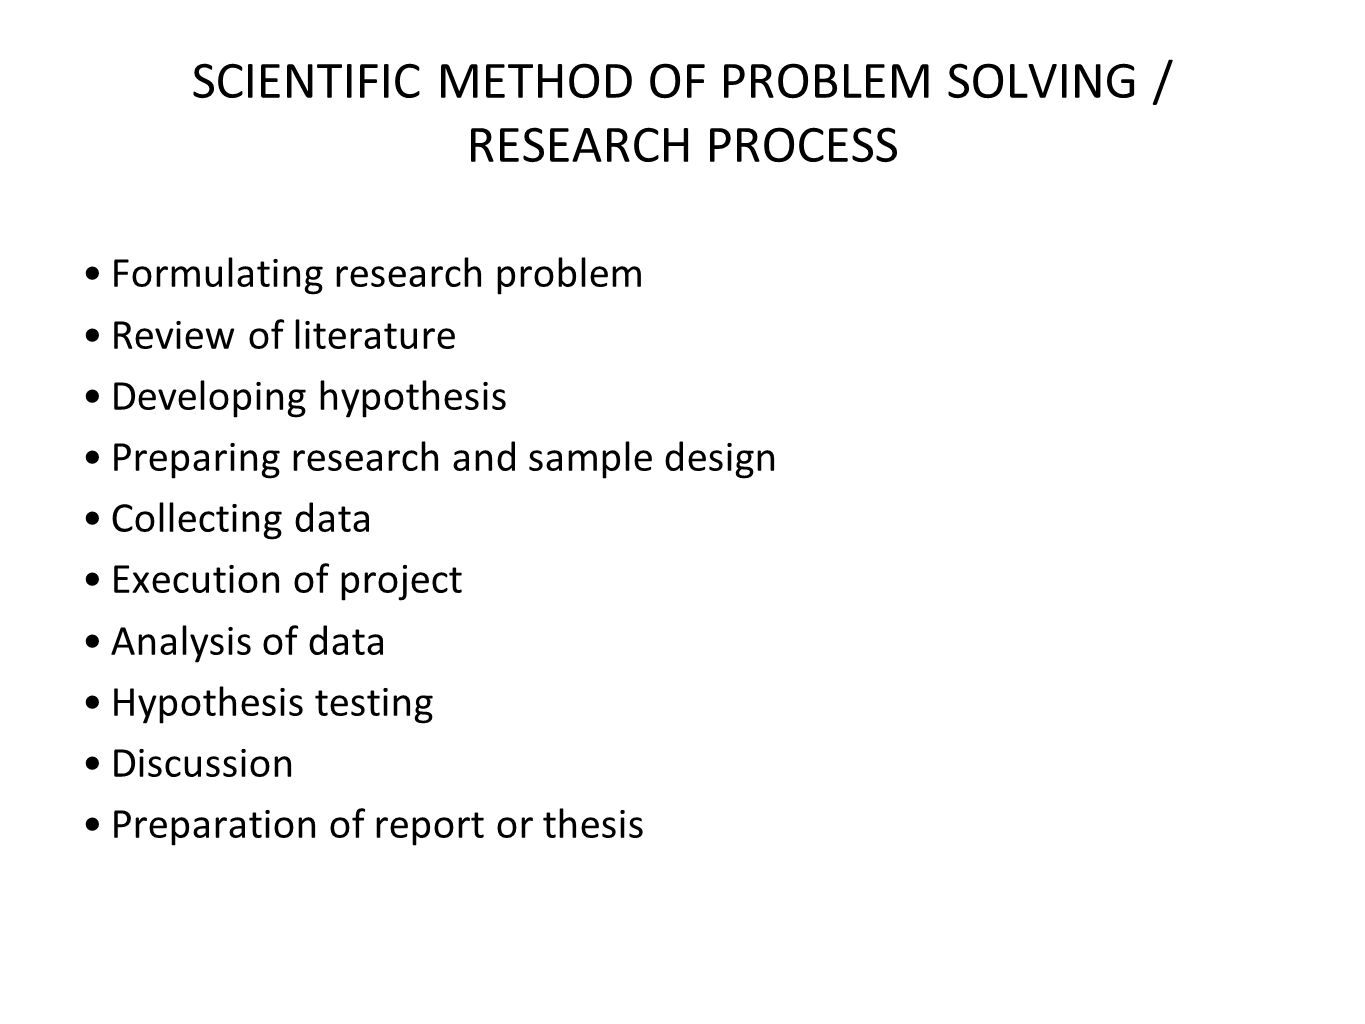 SCIENTIFIC METHOD OF PROBLEM SOLVING / RESEARCH PROCESS